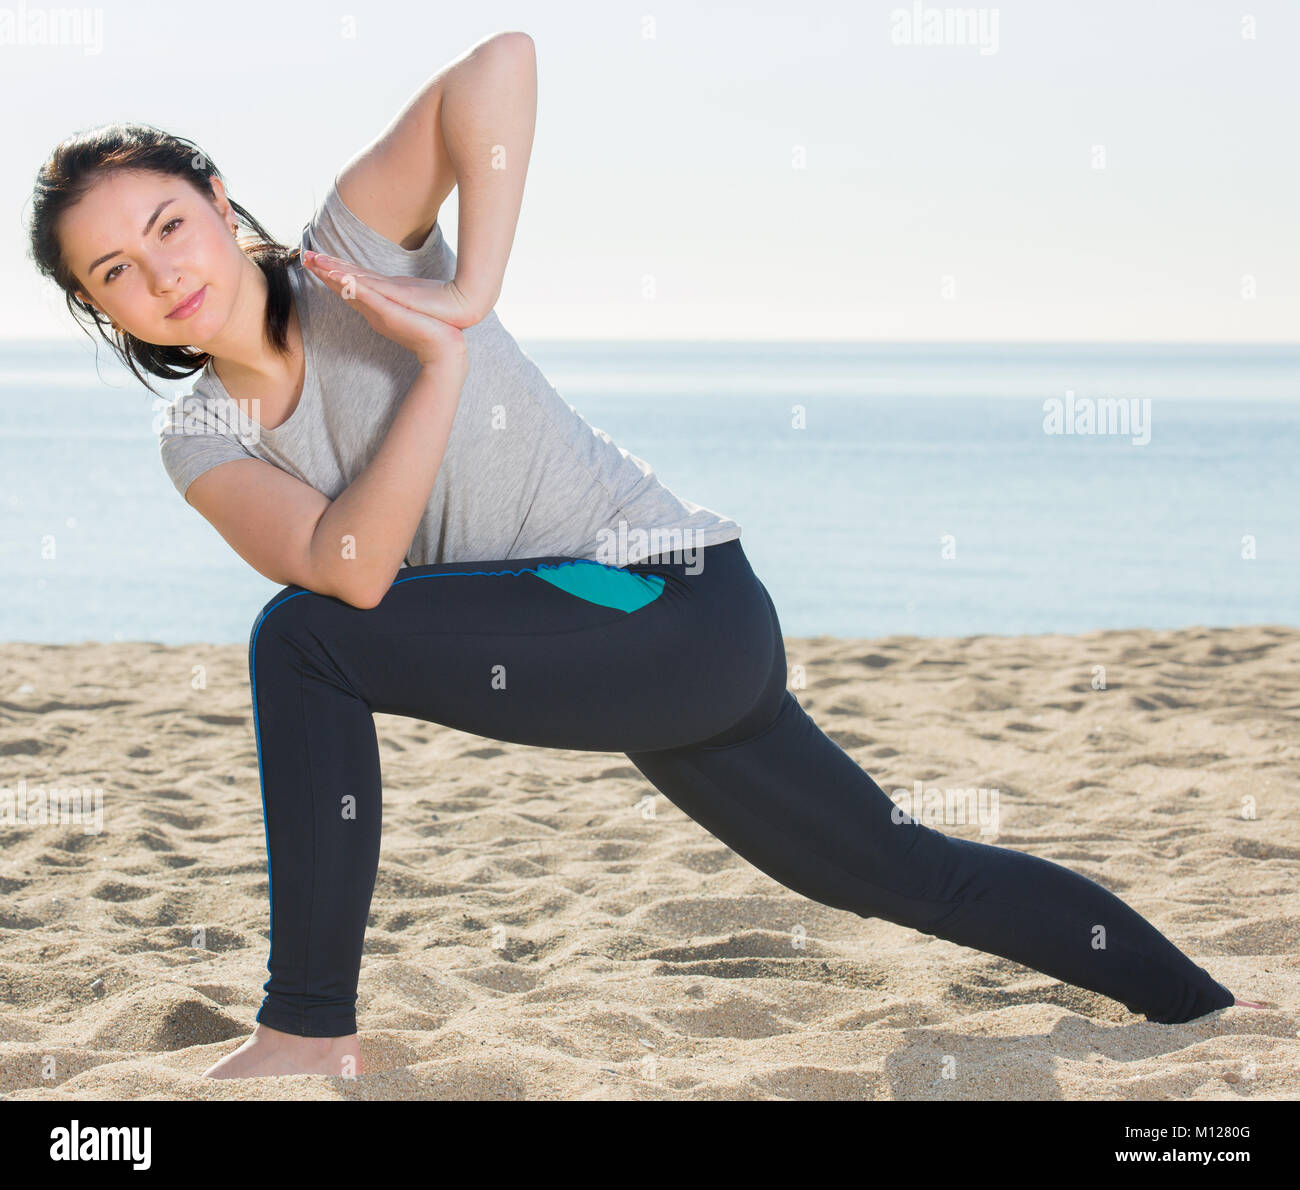 Yoga Poses High Resolution Stock Photography And Images Alamy